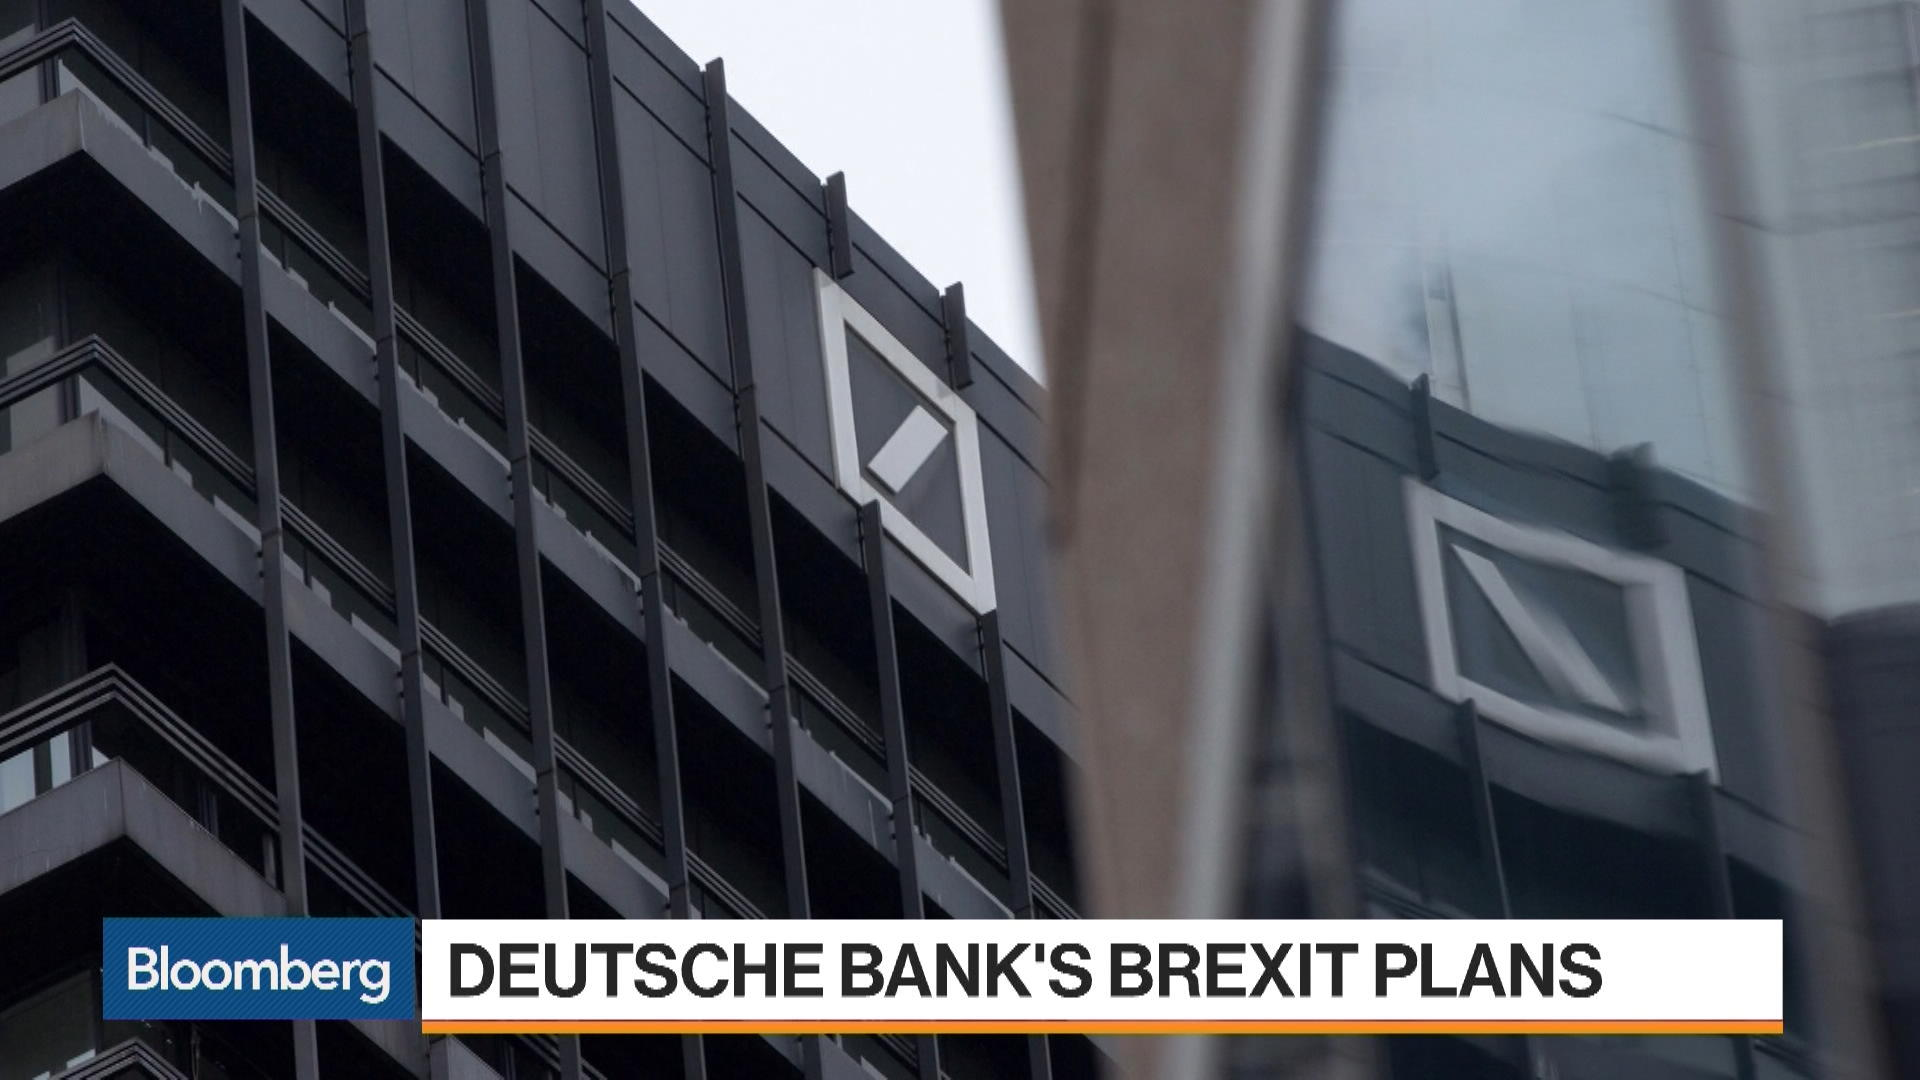 Deutsche Bank's Brexit Plan Puts Jobs at Risk – Bloomberg